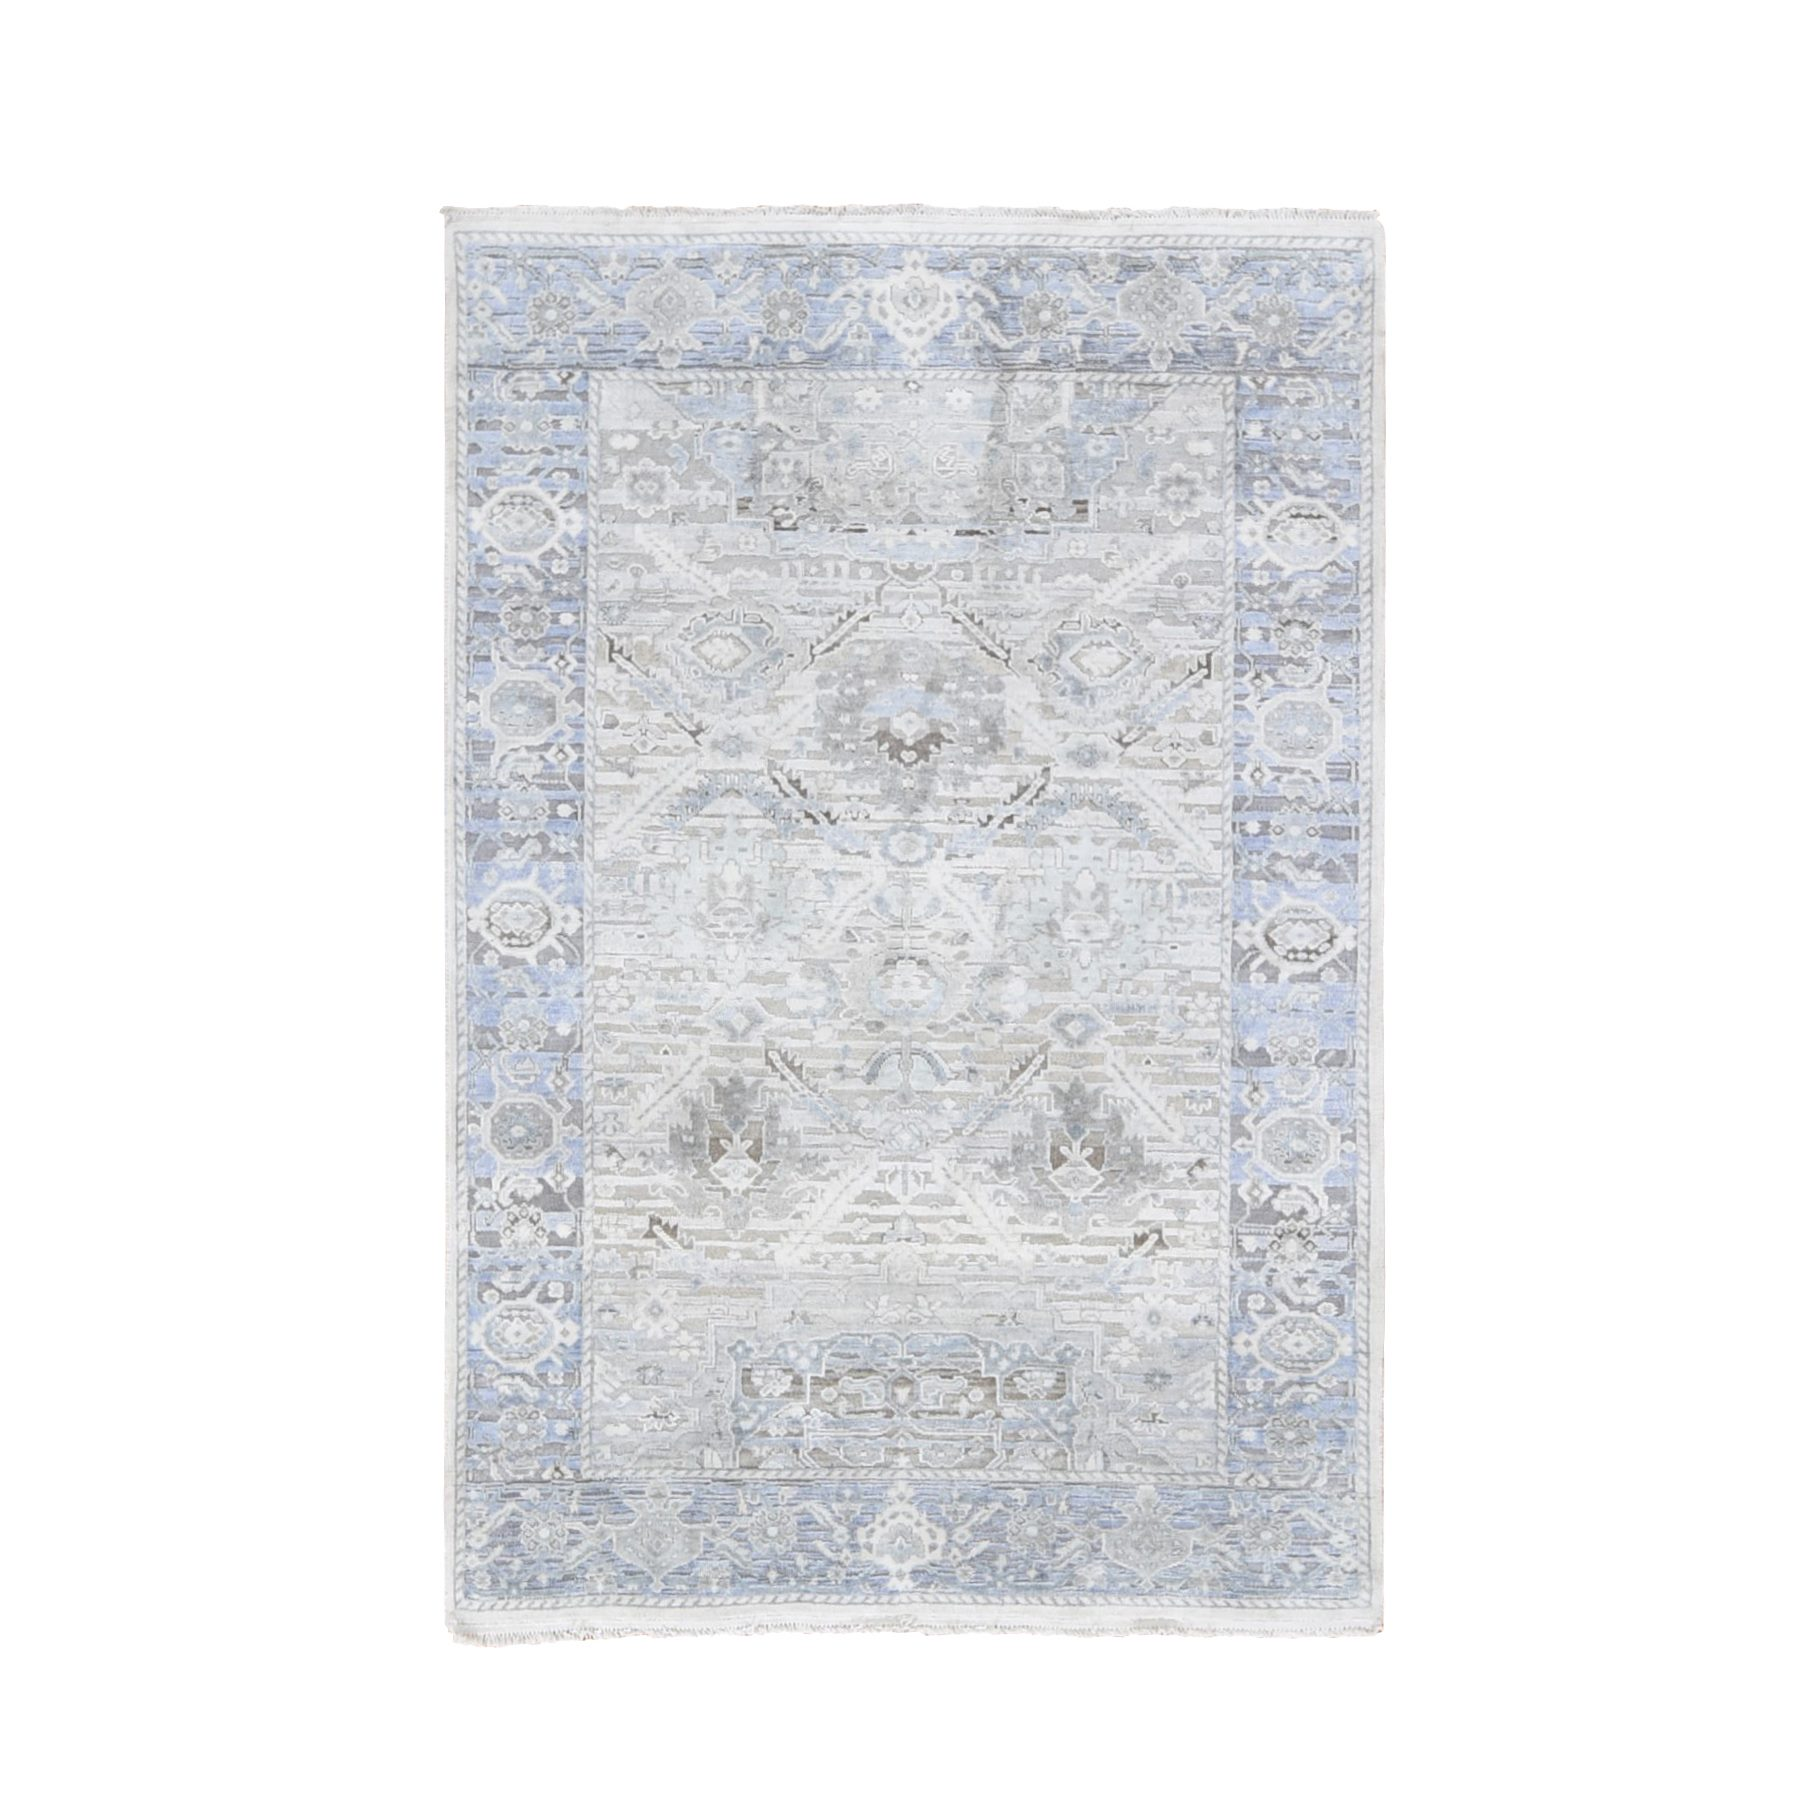 "4'x6'2"" Hand Woven Pure Silk And Textured Wool Oushak With Geometric Motif Oriental Rug"